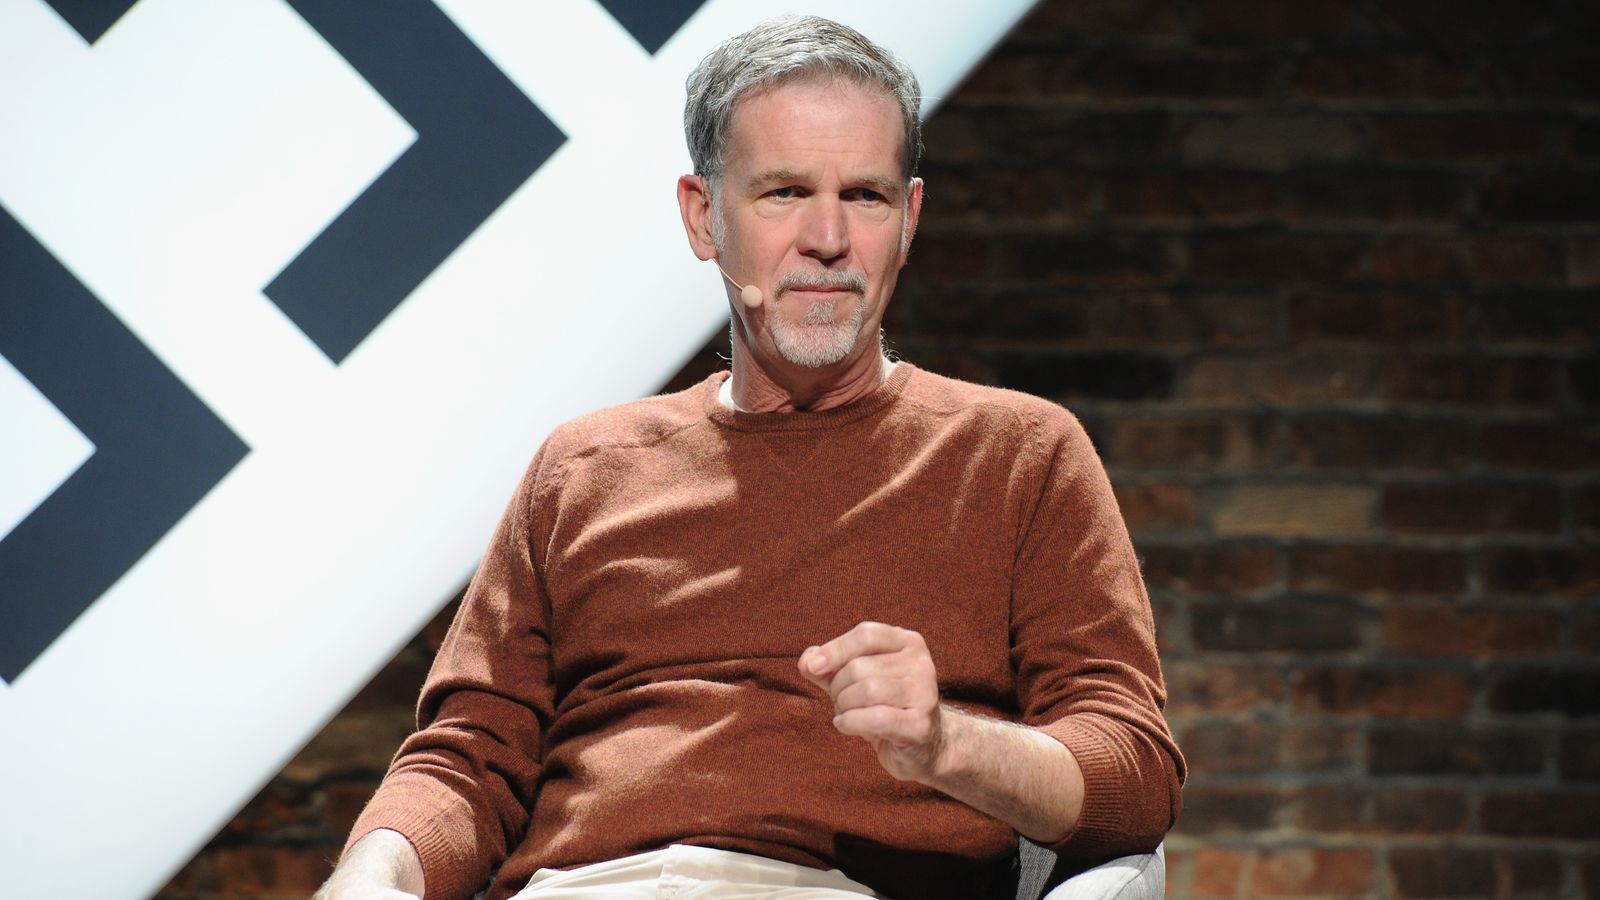 Facebook has Big Plans for its Video Business. Netflix CEO Reed Hastings is on Facebook's Board. Discuss.